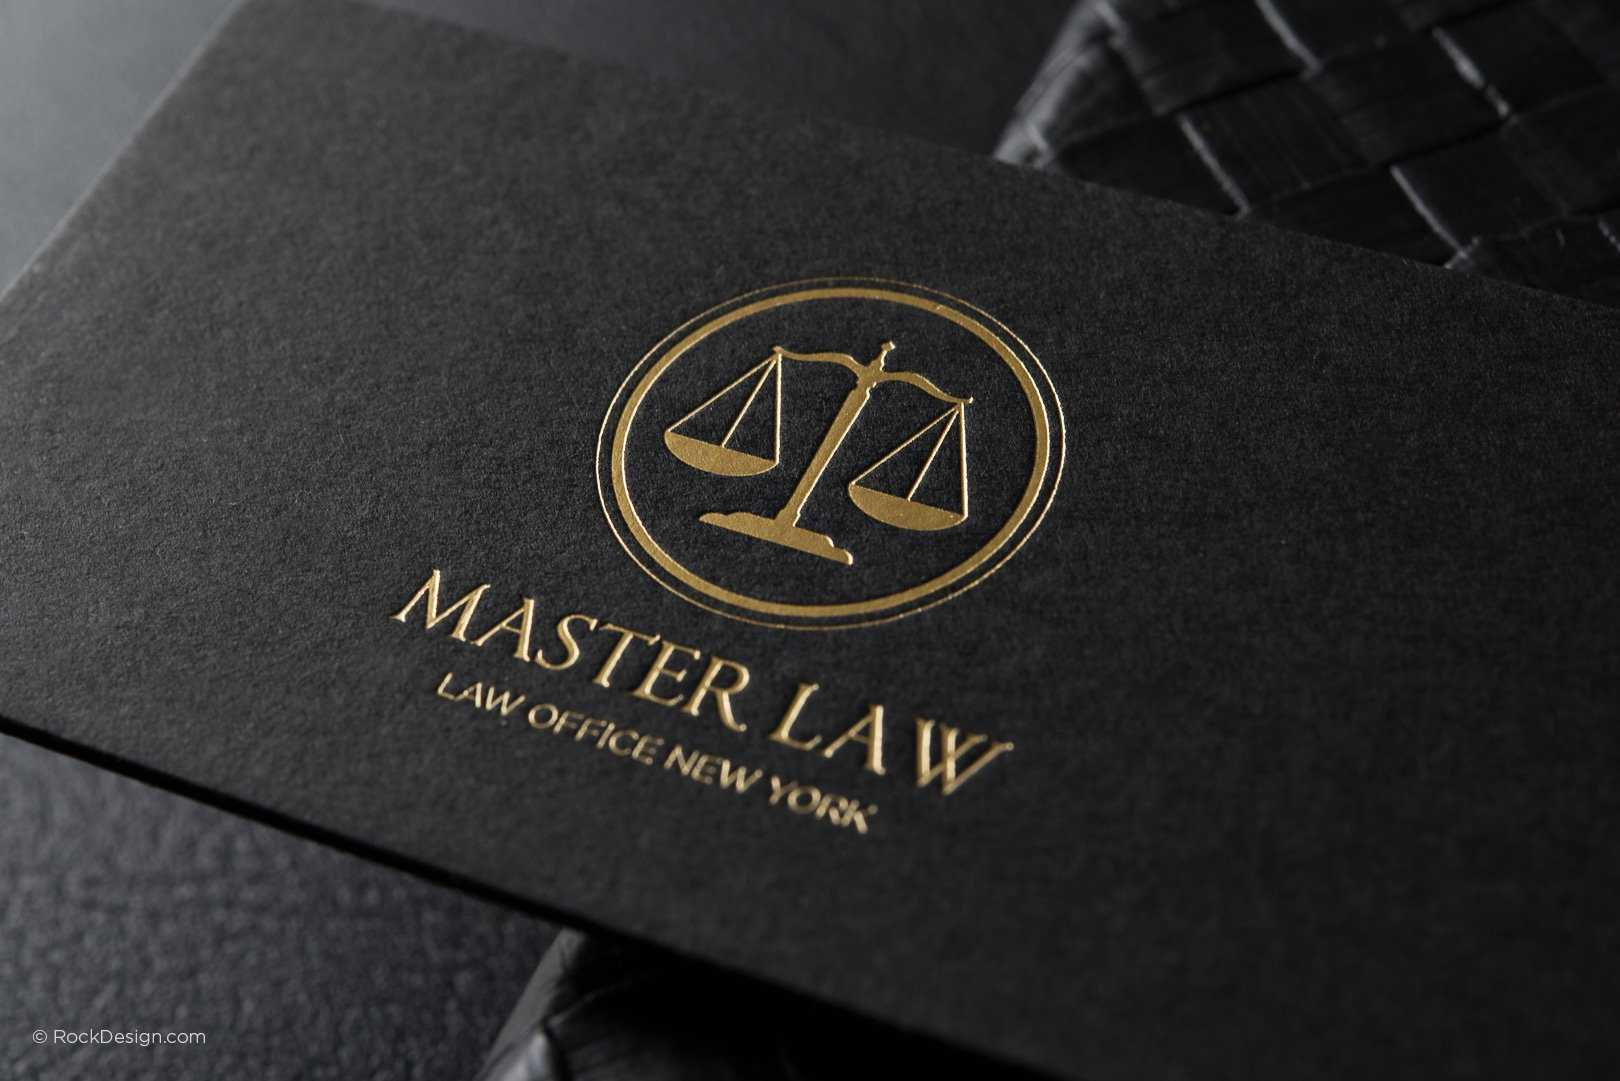 Free Lawyer Business Card Template | Rockdesign With Regard To Legal Business Cards Templates Free